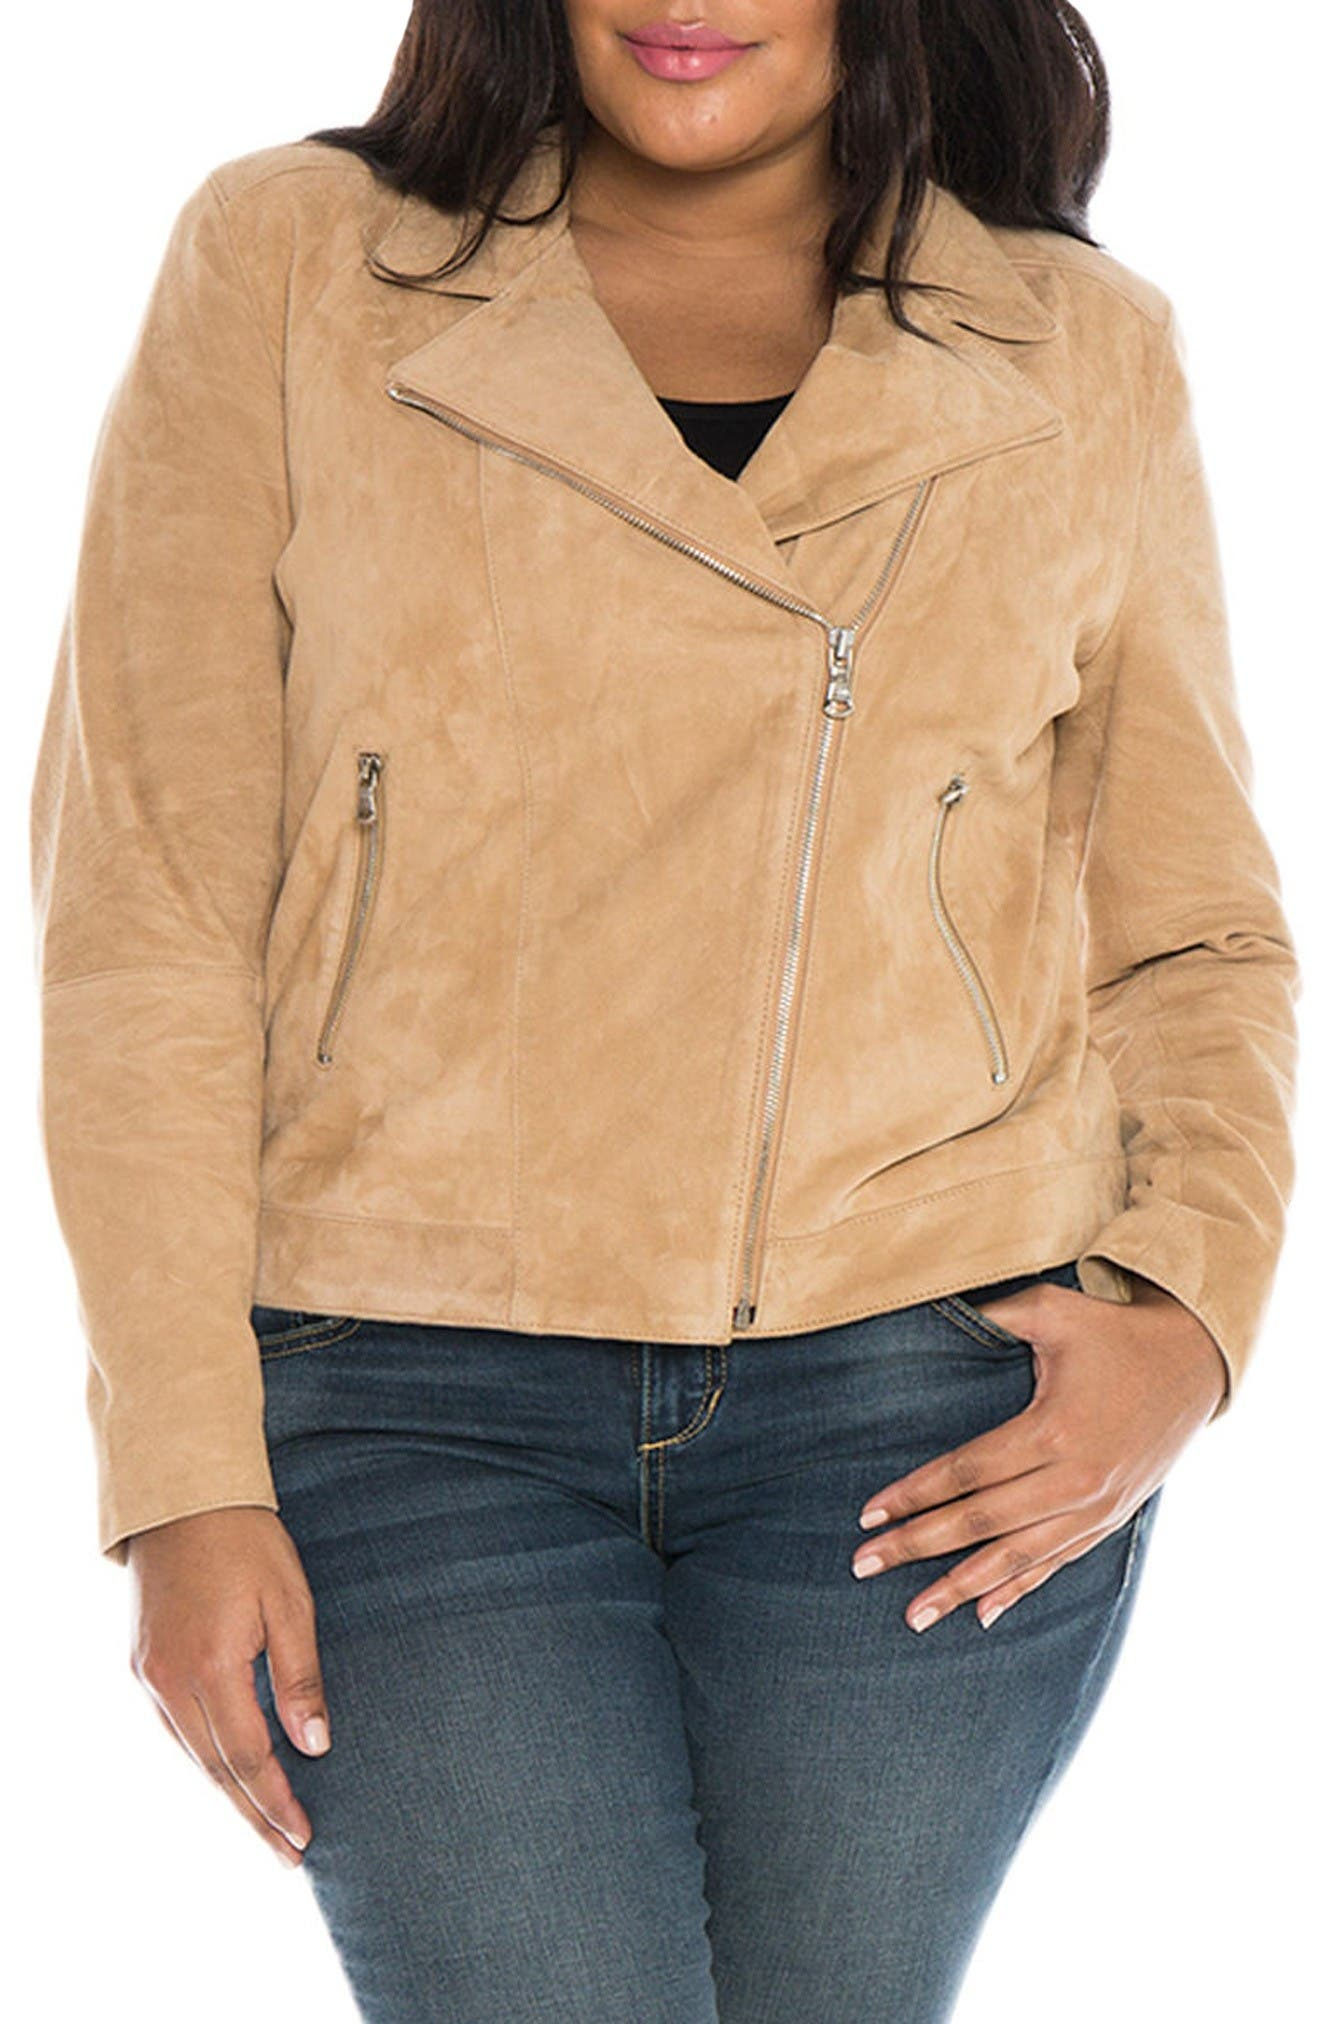 Canyon Suede Jacket,                         Main,                         color, Sand